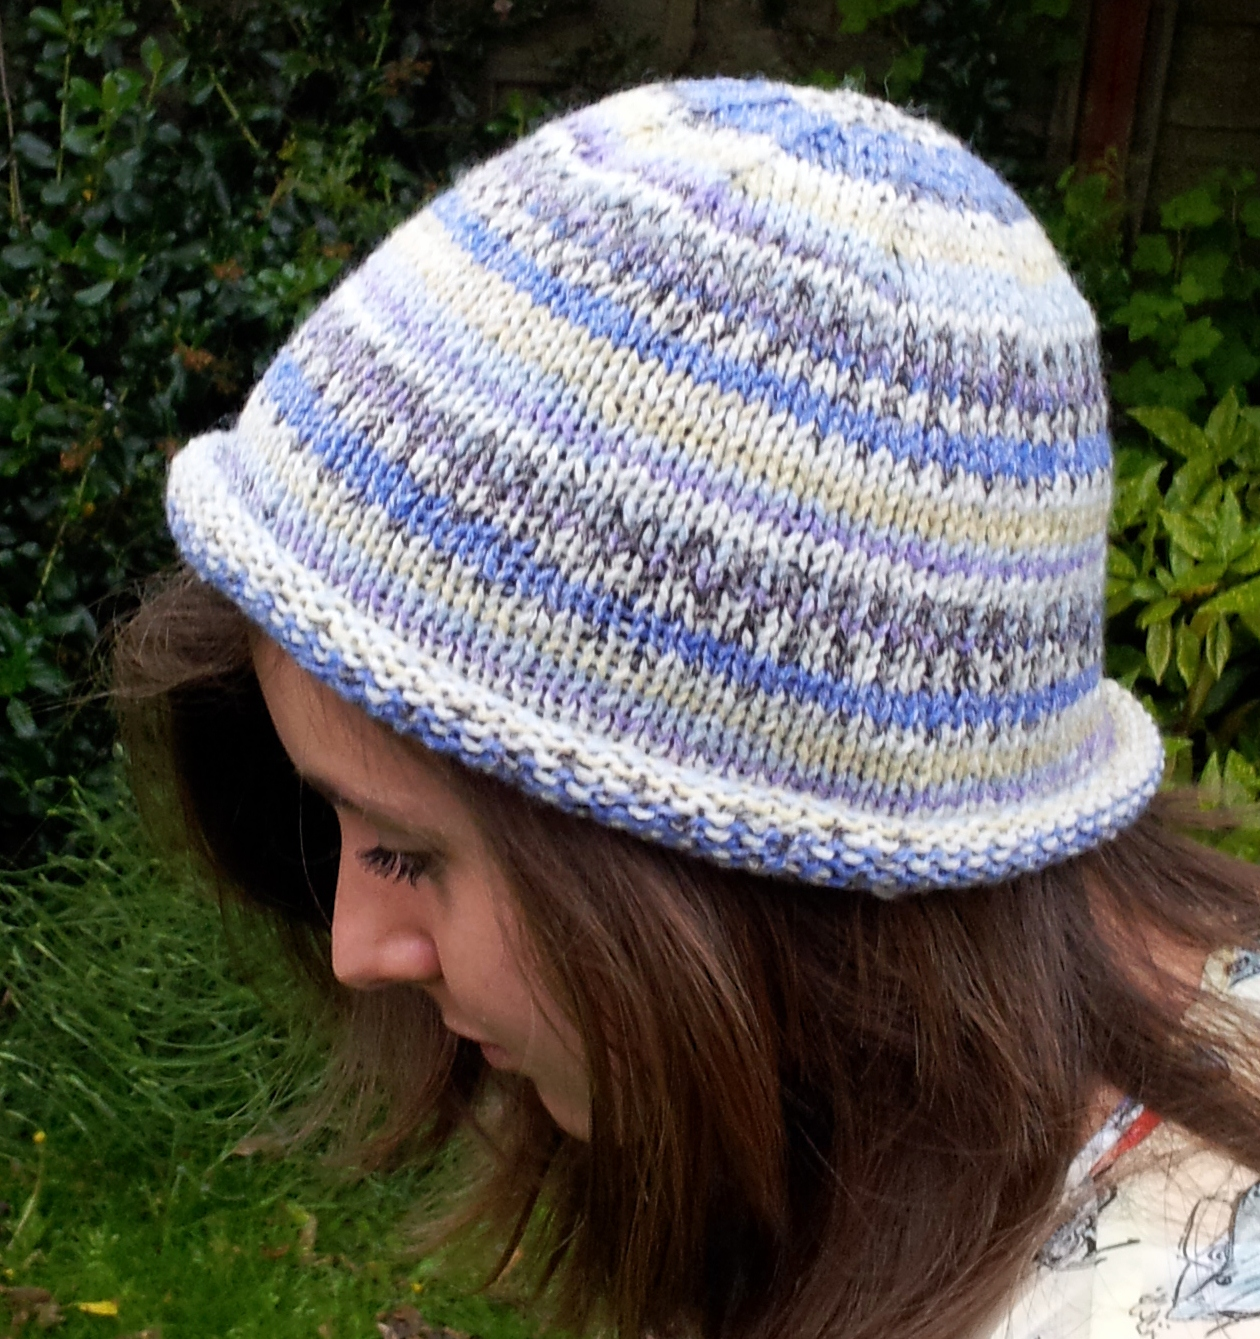 Free Knit Beanie Pattern : Knitted Rolled Brim Beanie Hat   Free beginners pattern thestitchsharer